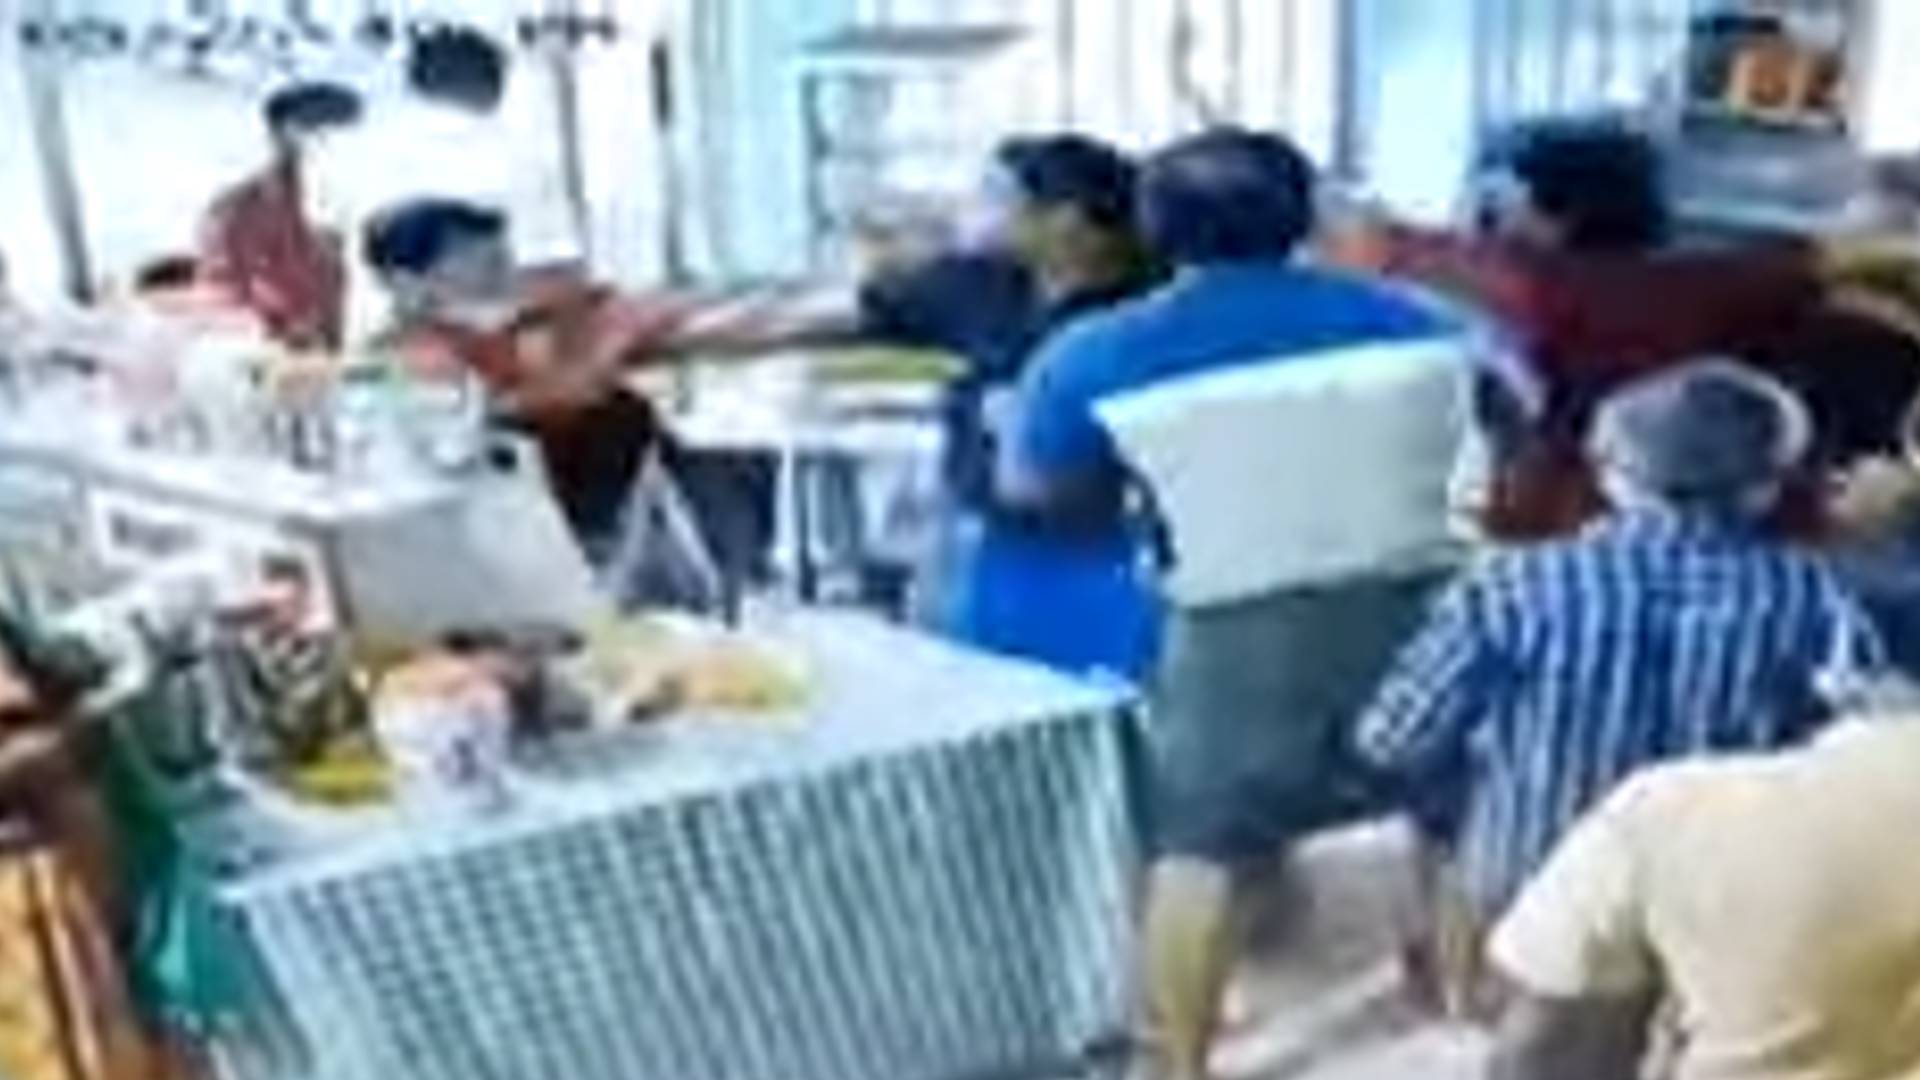 hospital canteen conflict